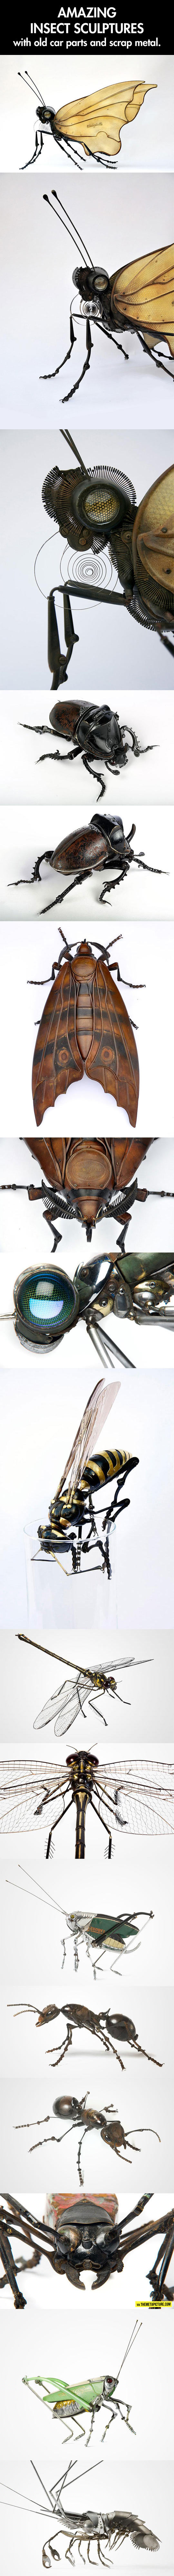 cool-insect-sculptures-artist-old-car